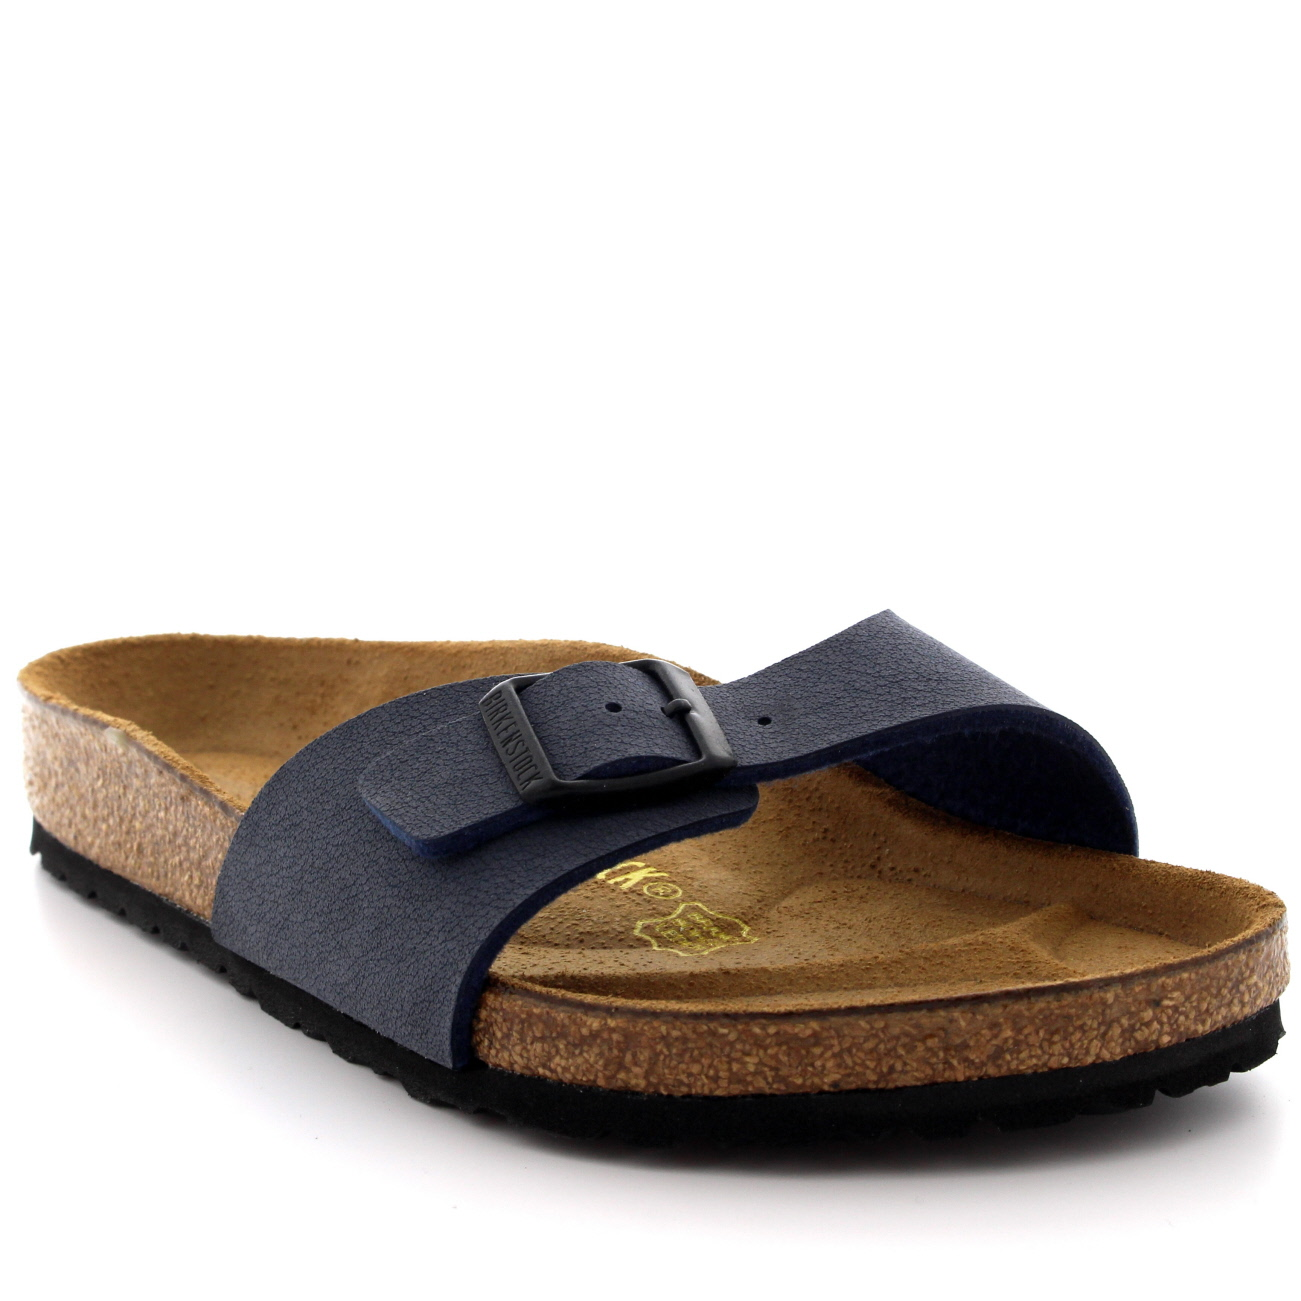 6defc27d3 Birkenstock Sale Clearance Canada Futons For Less